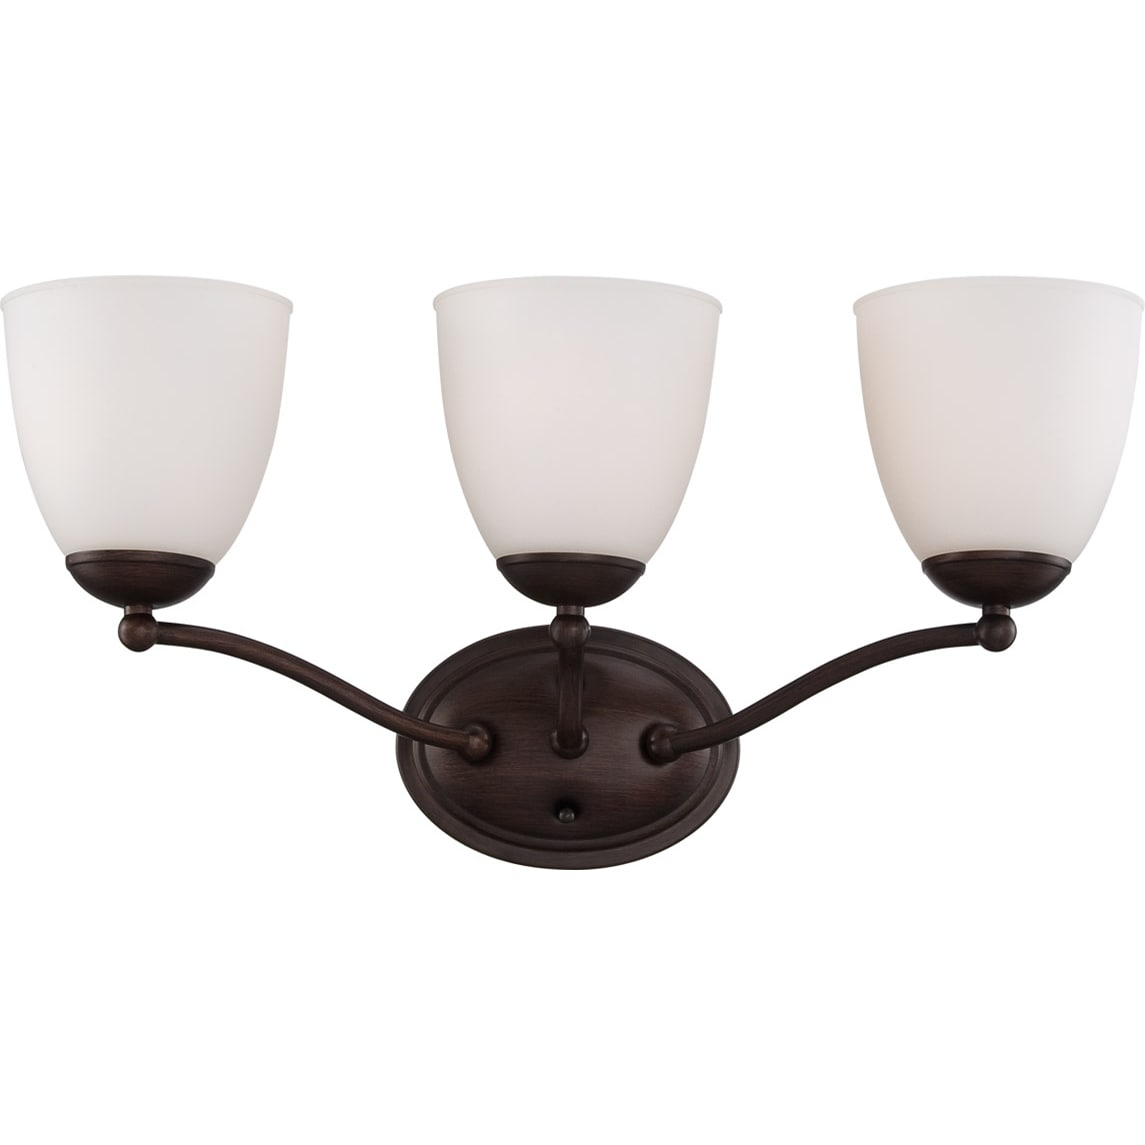 Nuvo Patton 3-light Prairie Bronze Vanity Fixture